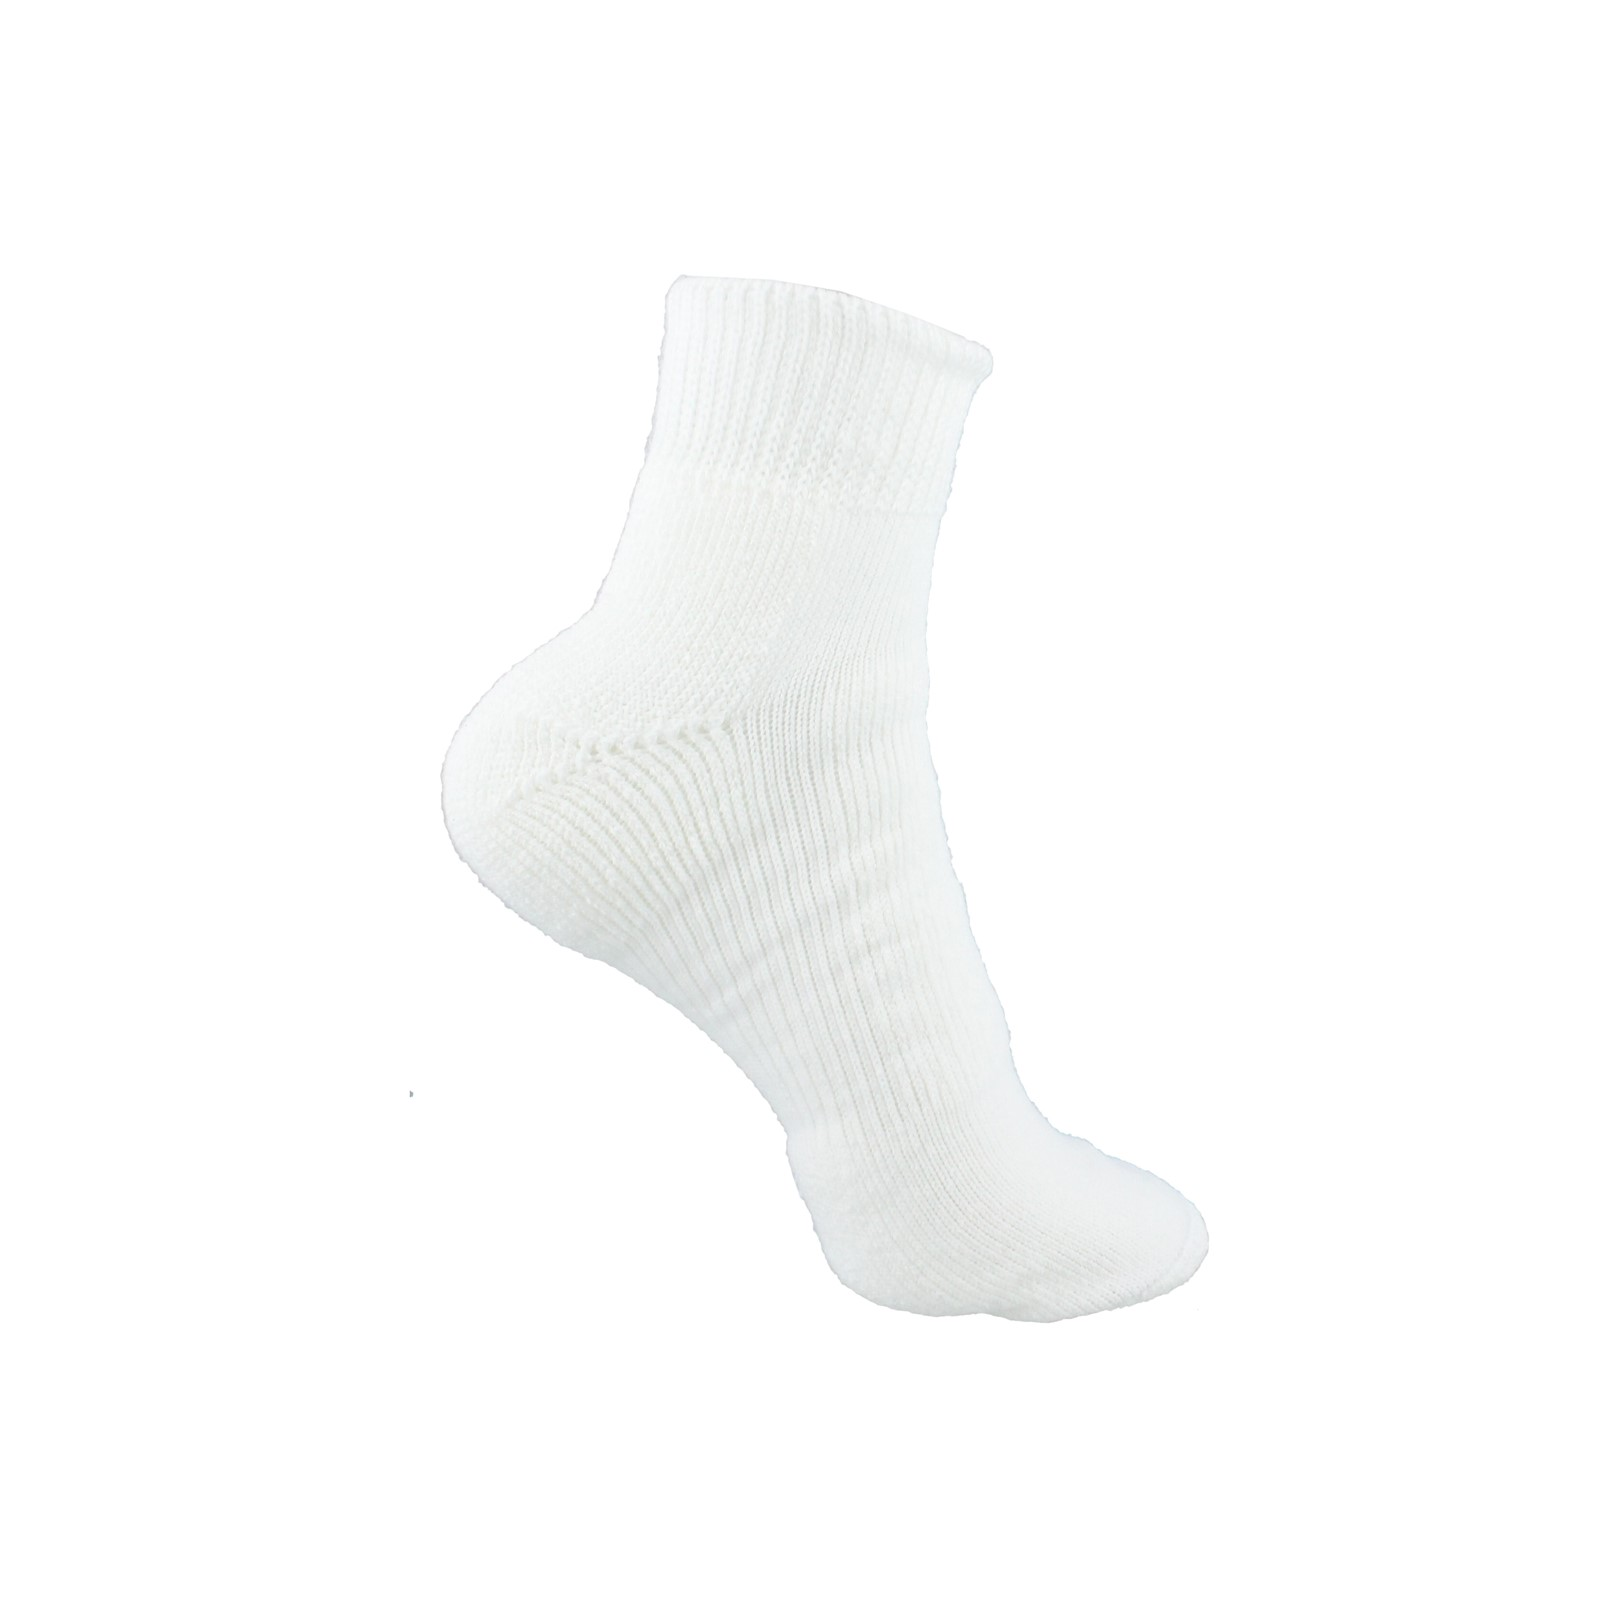 Men's Thorlos, WMX Walking Socks - XLarge - 1 Pack